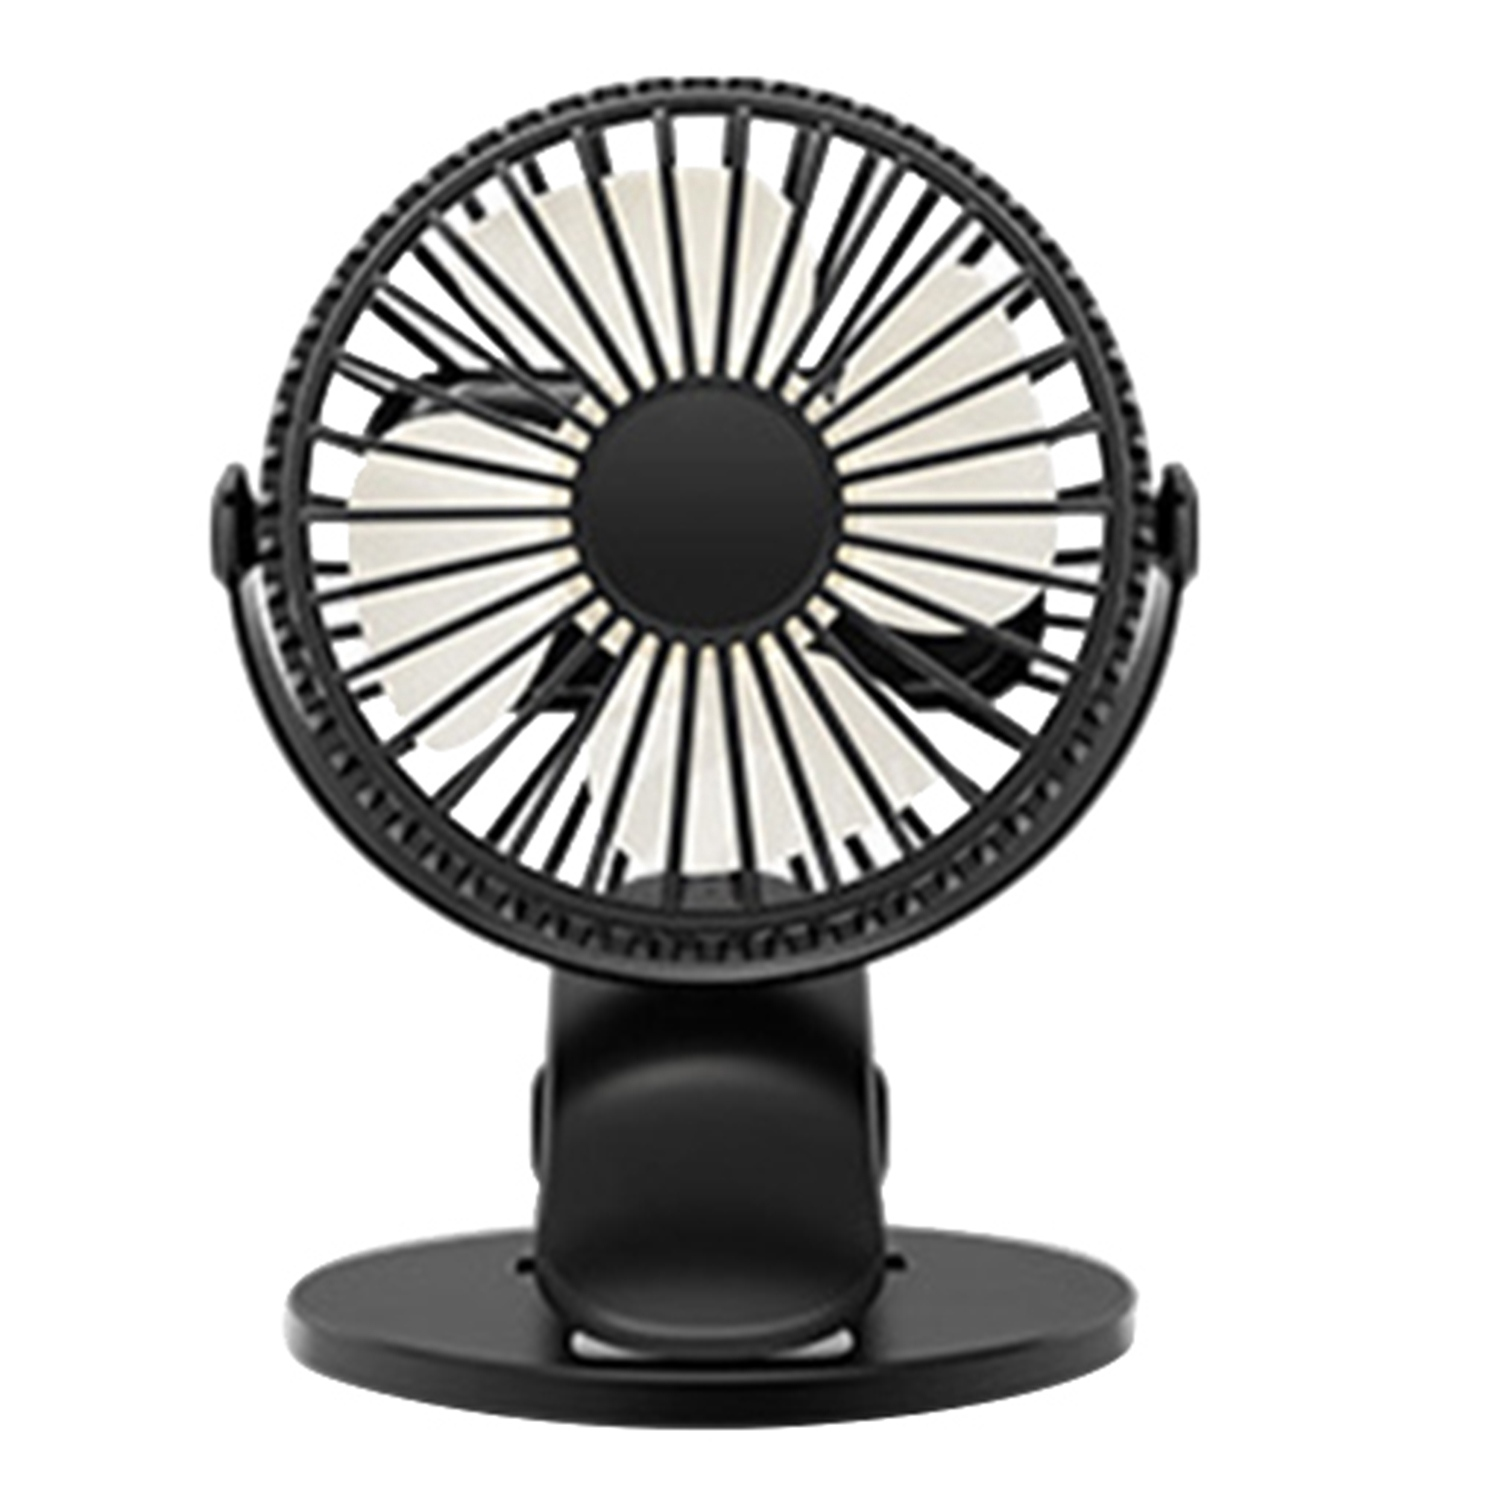 Sensible Portable Desk Usb Cooler Cooling Fan Usb Mini Fans Operation Super Mute Silent Pc/laptop/notebook To Rank First Among Similar Products Small Air Conditioning Appliances Home Appliances